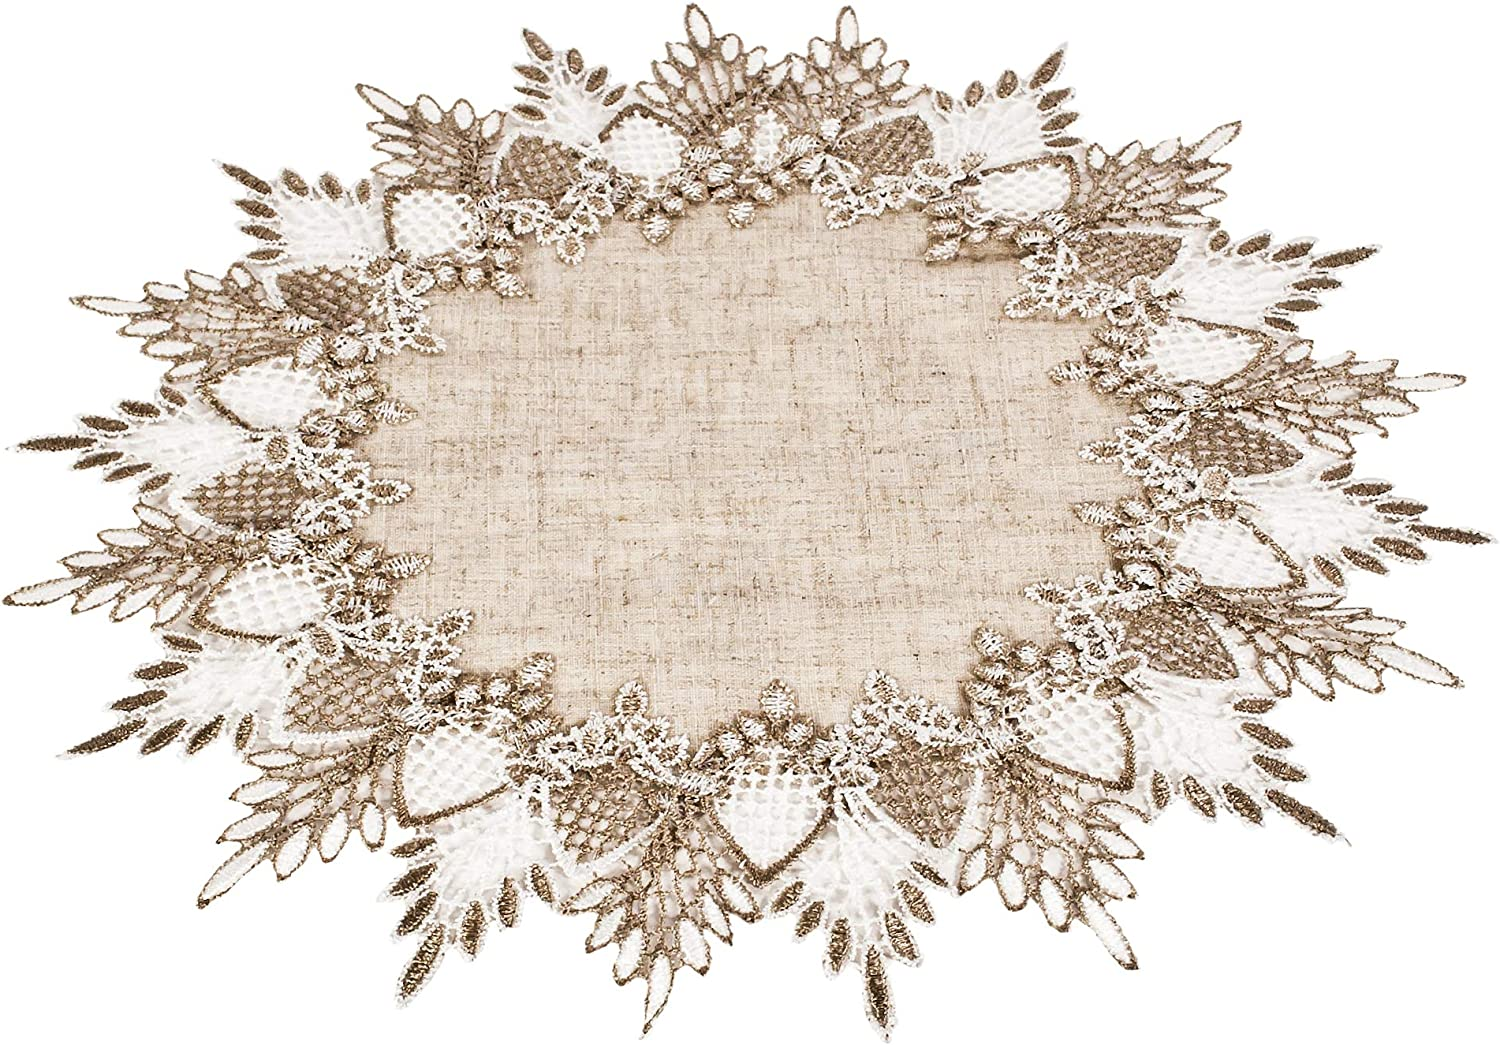 Lace Doily 15 inches Neutral Earth Table Tones Plac Max Max 89% OFF 86% OFF Topper Scarf